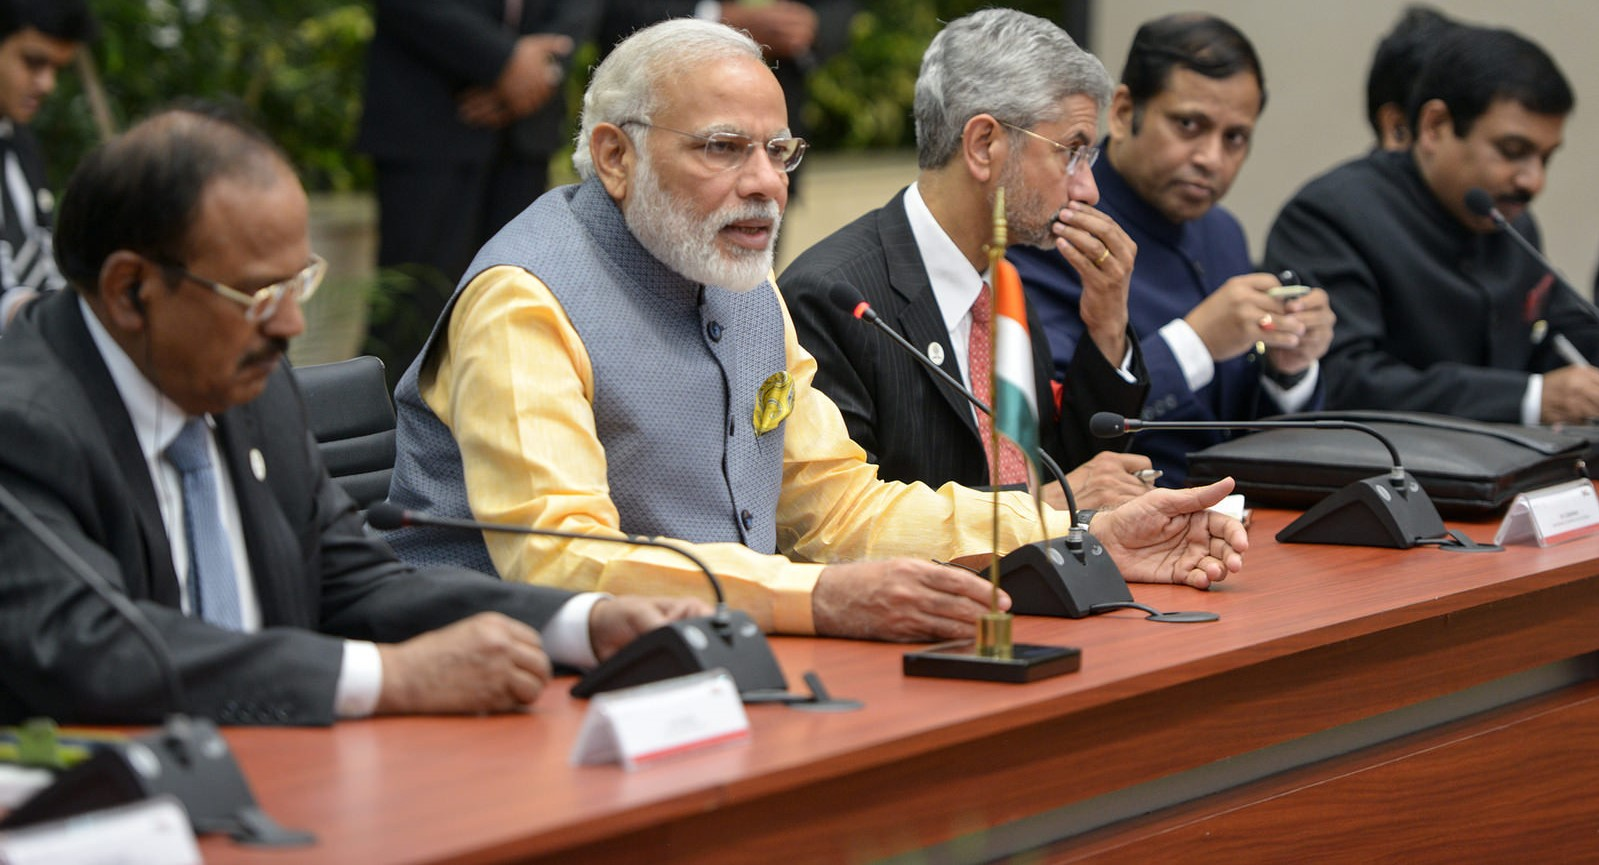 Indian Prime Minister Narendra Modi and Foreign Secretary S Jaishankar, June 2016 (Photo: Flickr/Presidencia de la República Mexicana)